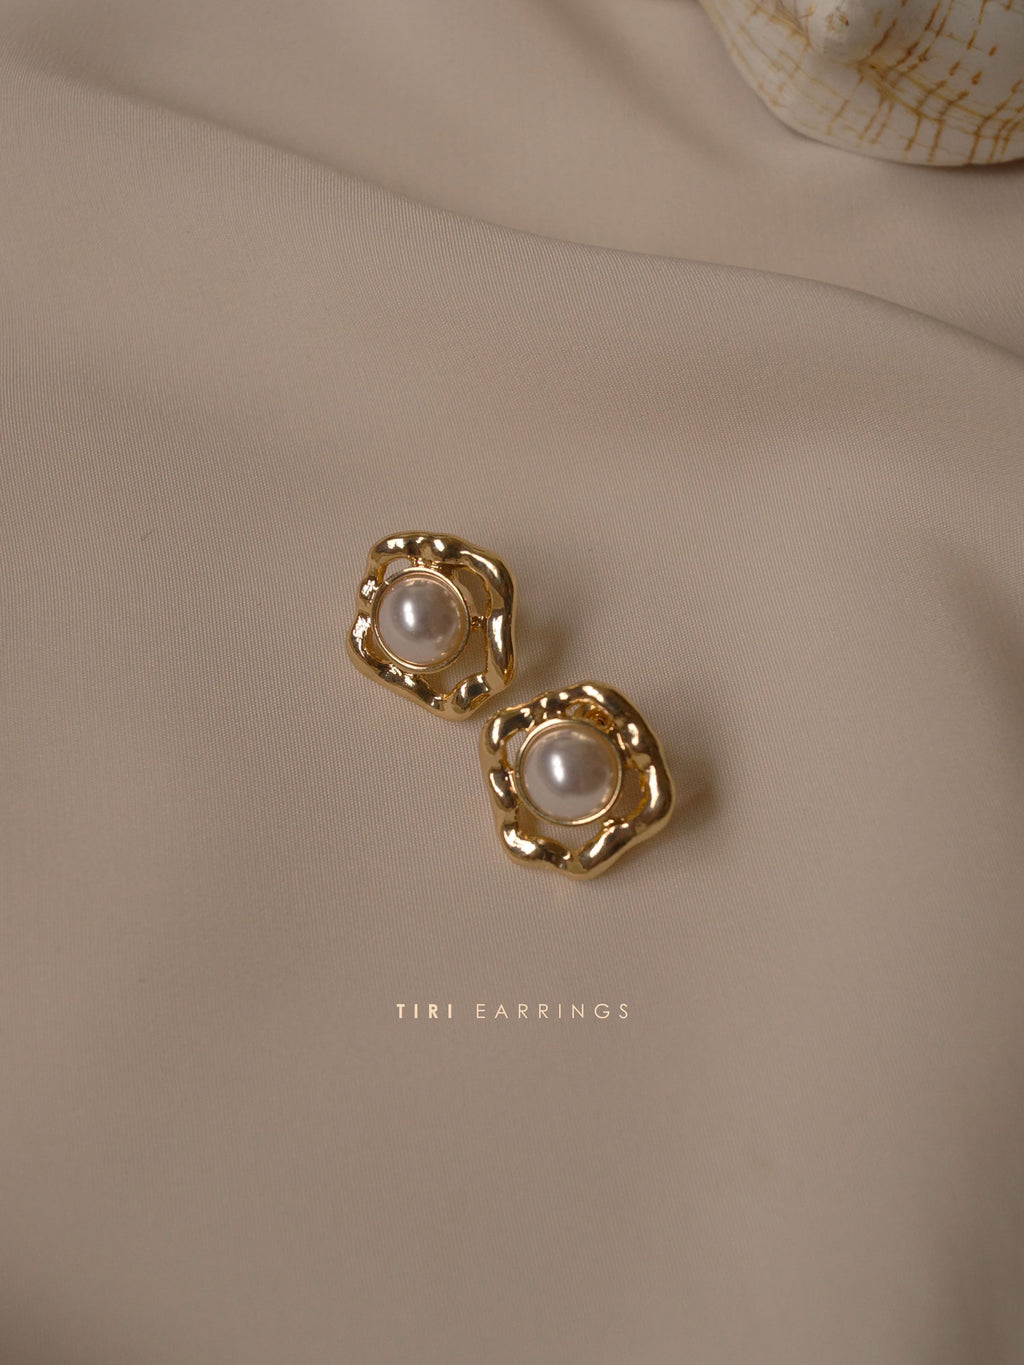 Tiri Earrings